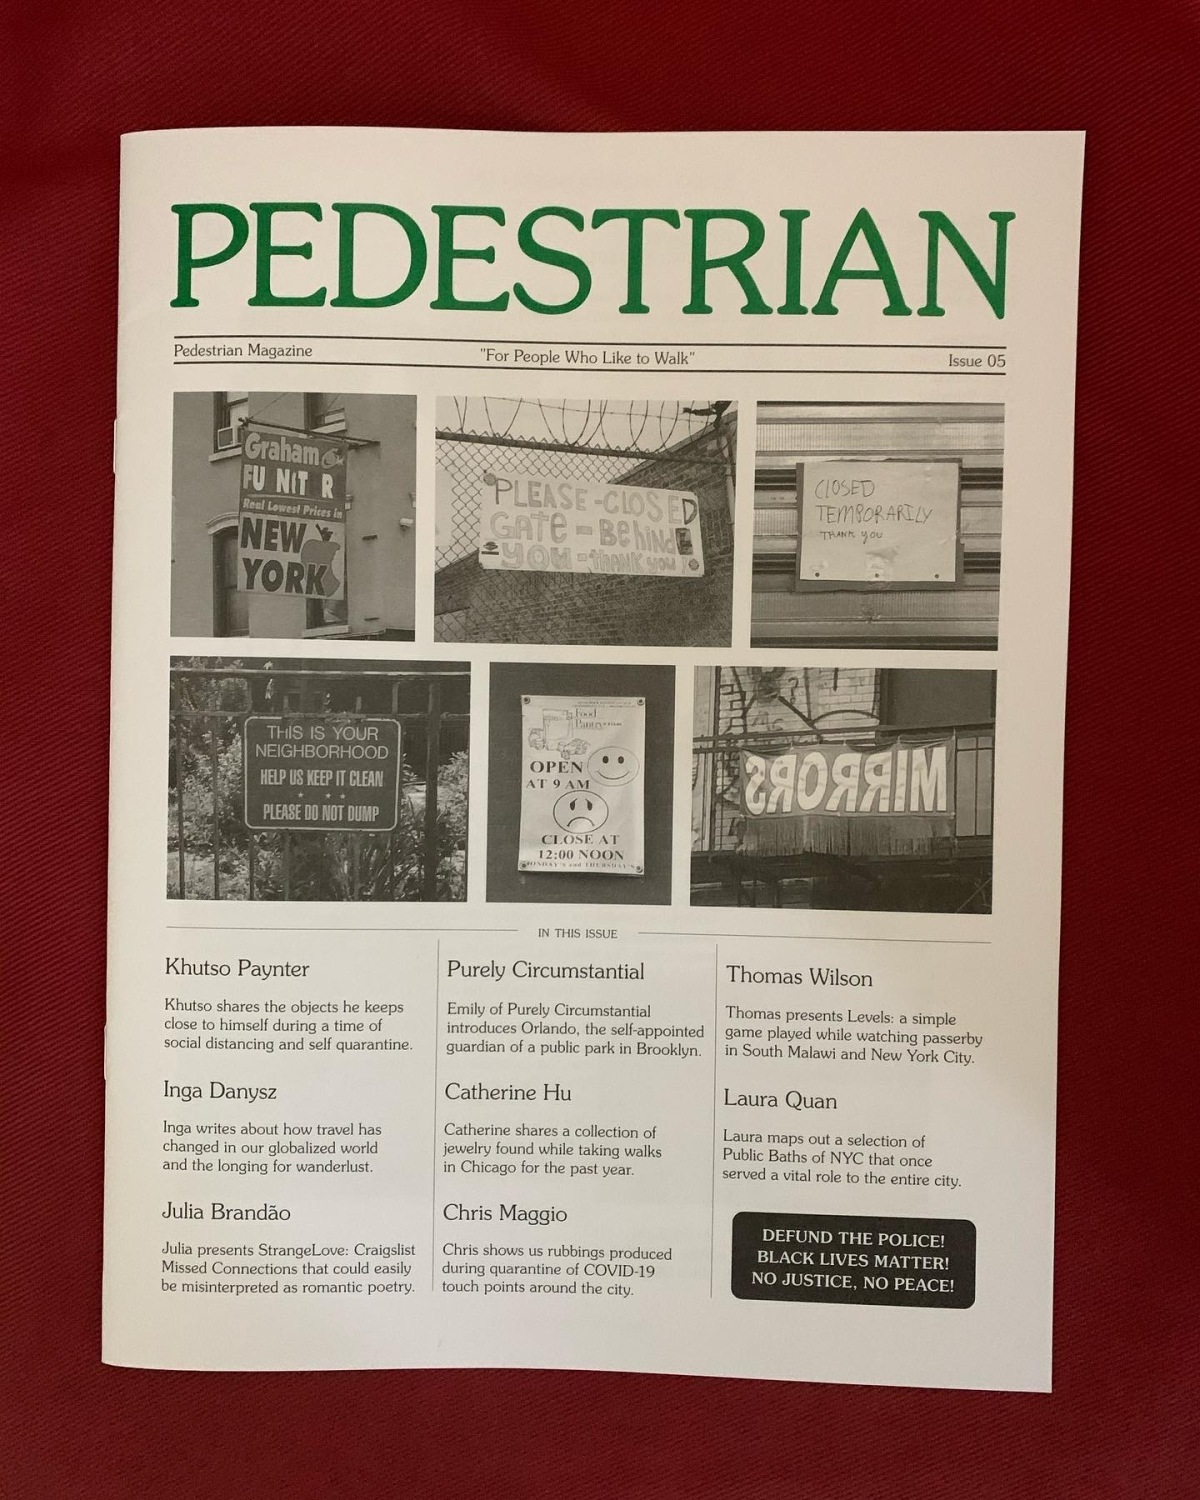 We're in Pedestrian Magazine